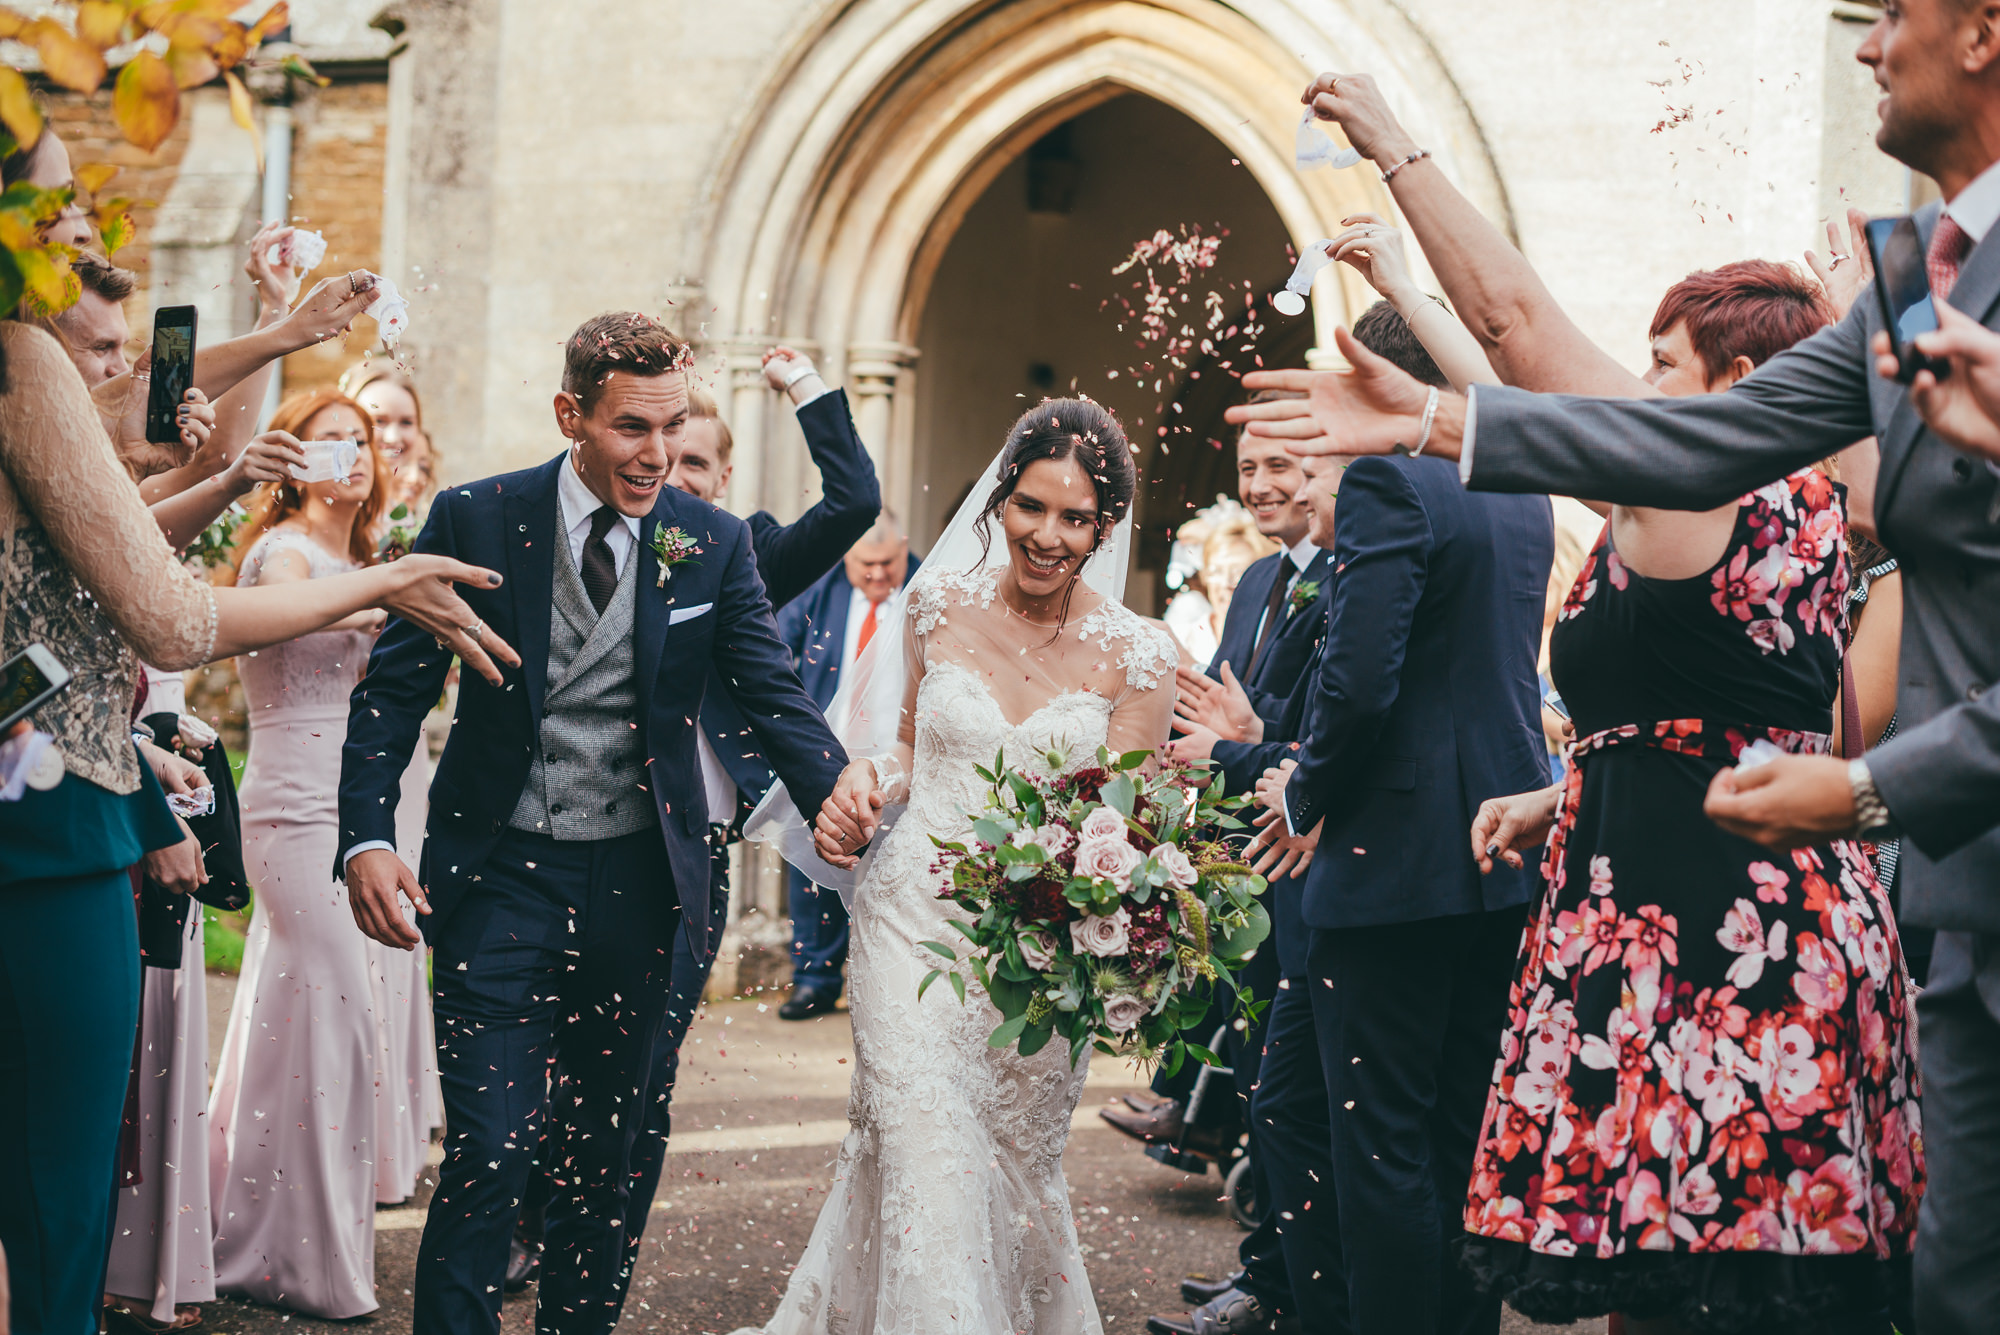 confetti throw over the bride and groom